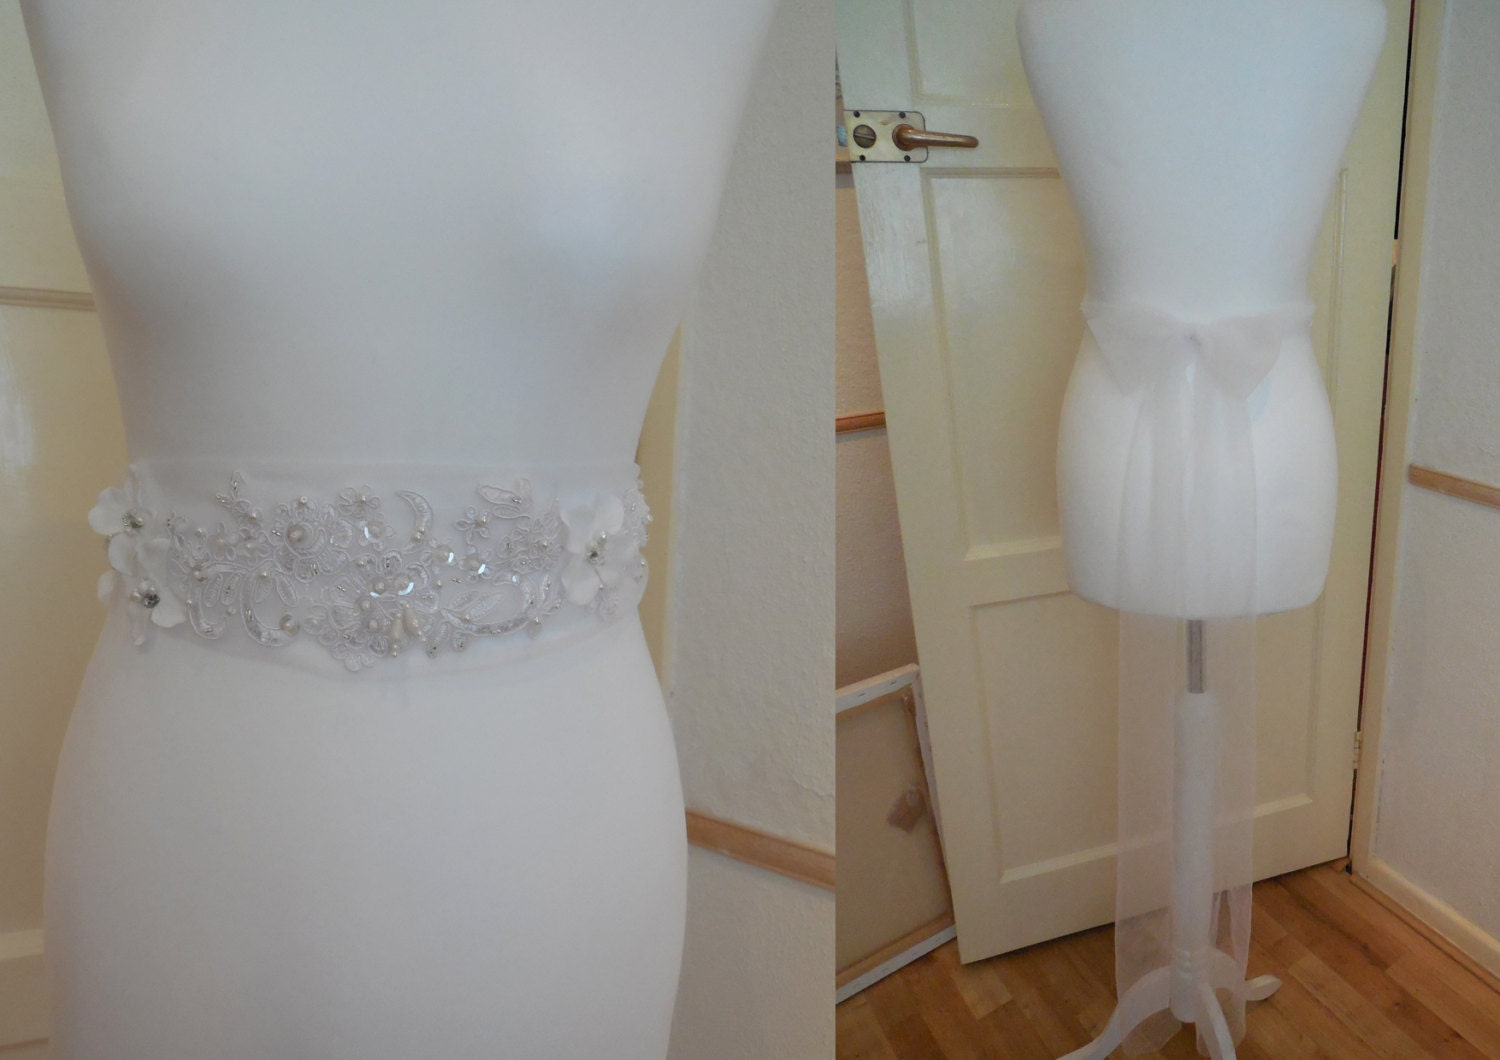 A White Jeweled beads Lace floral bridal wedding gown soft tulle sash belt with ready made bow brooch pin at back is for sale.